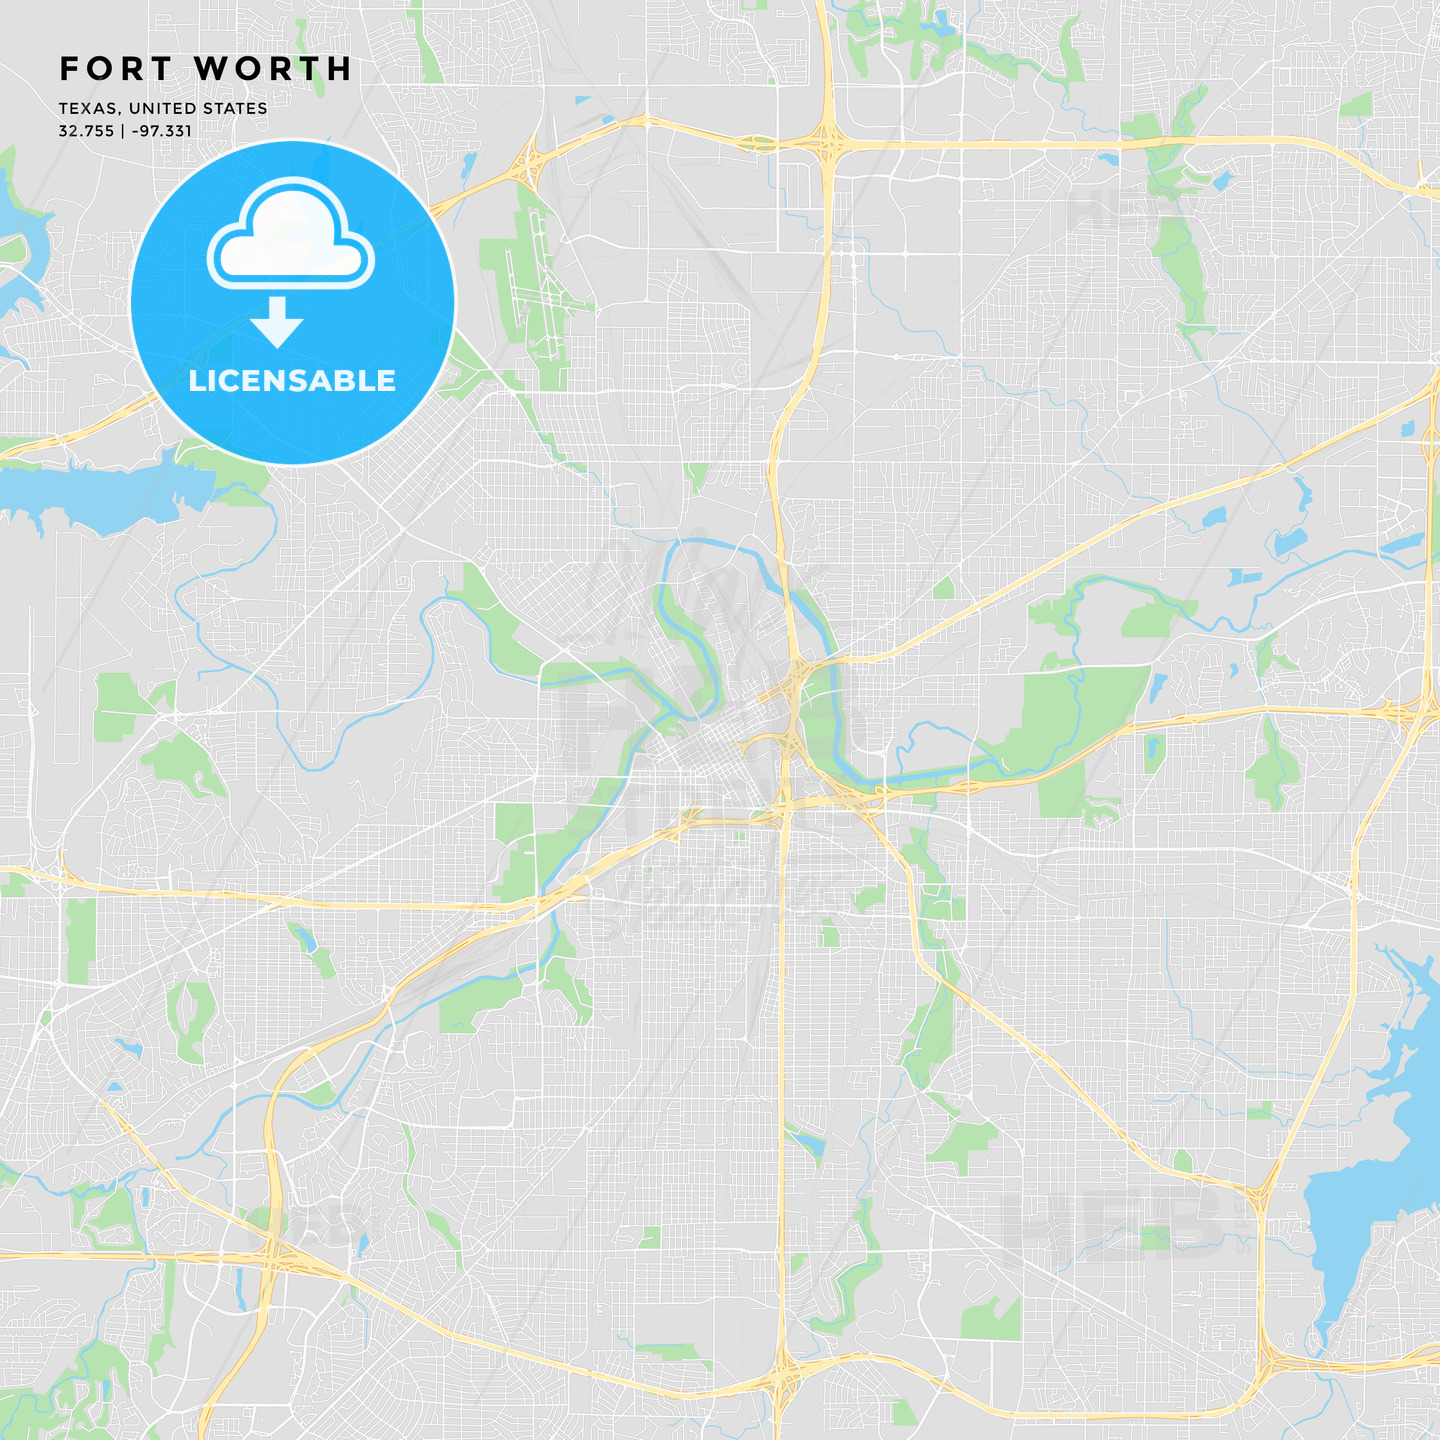 Printable street map of Fort Worth, Texas